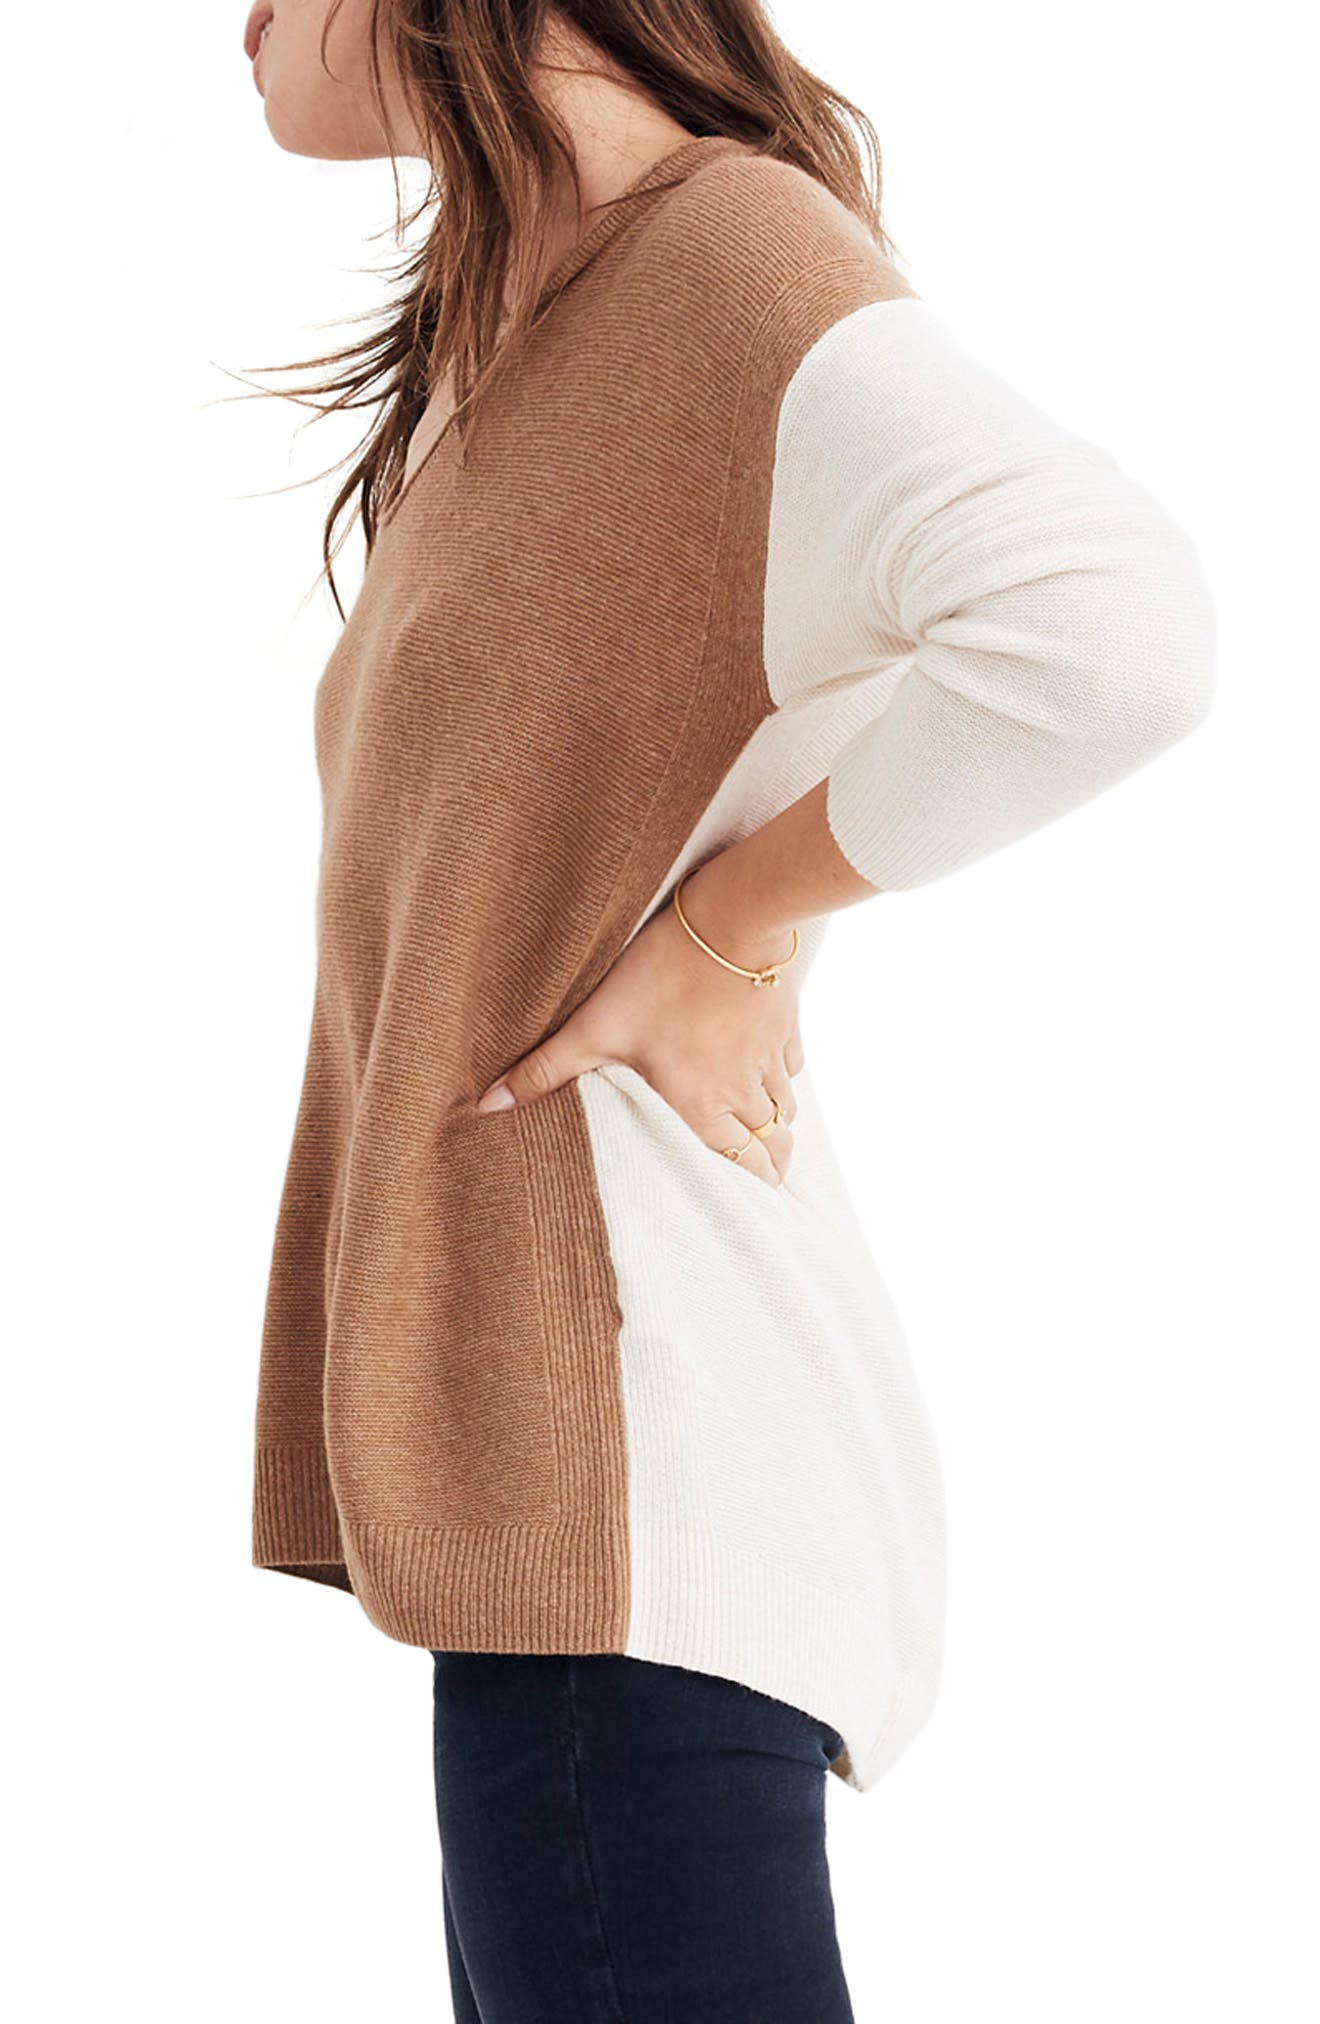 MADEWELL, Kimball Colorblock Sweater, Alternate thumbnail 4, color, 021